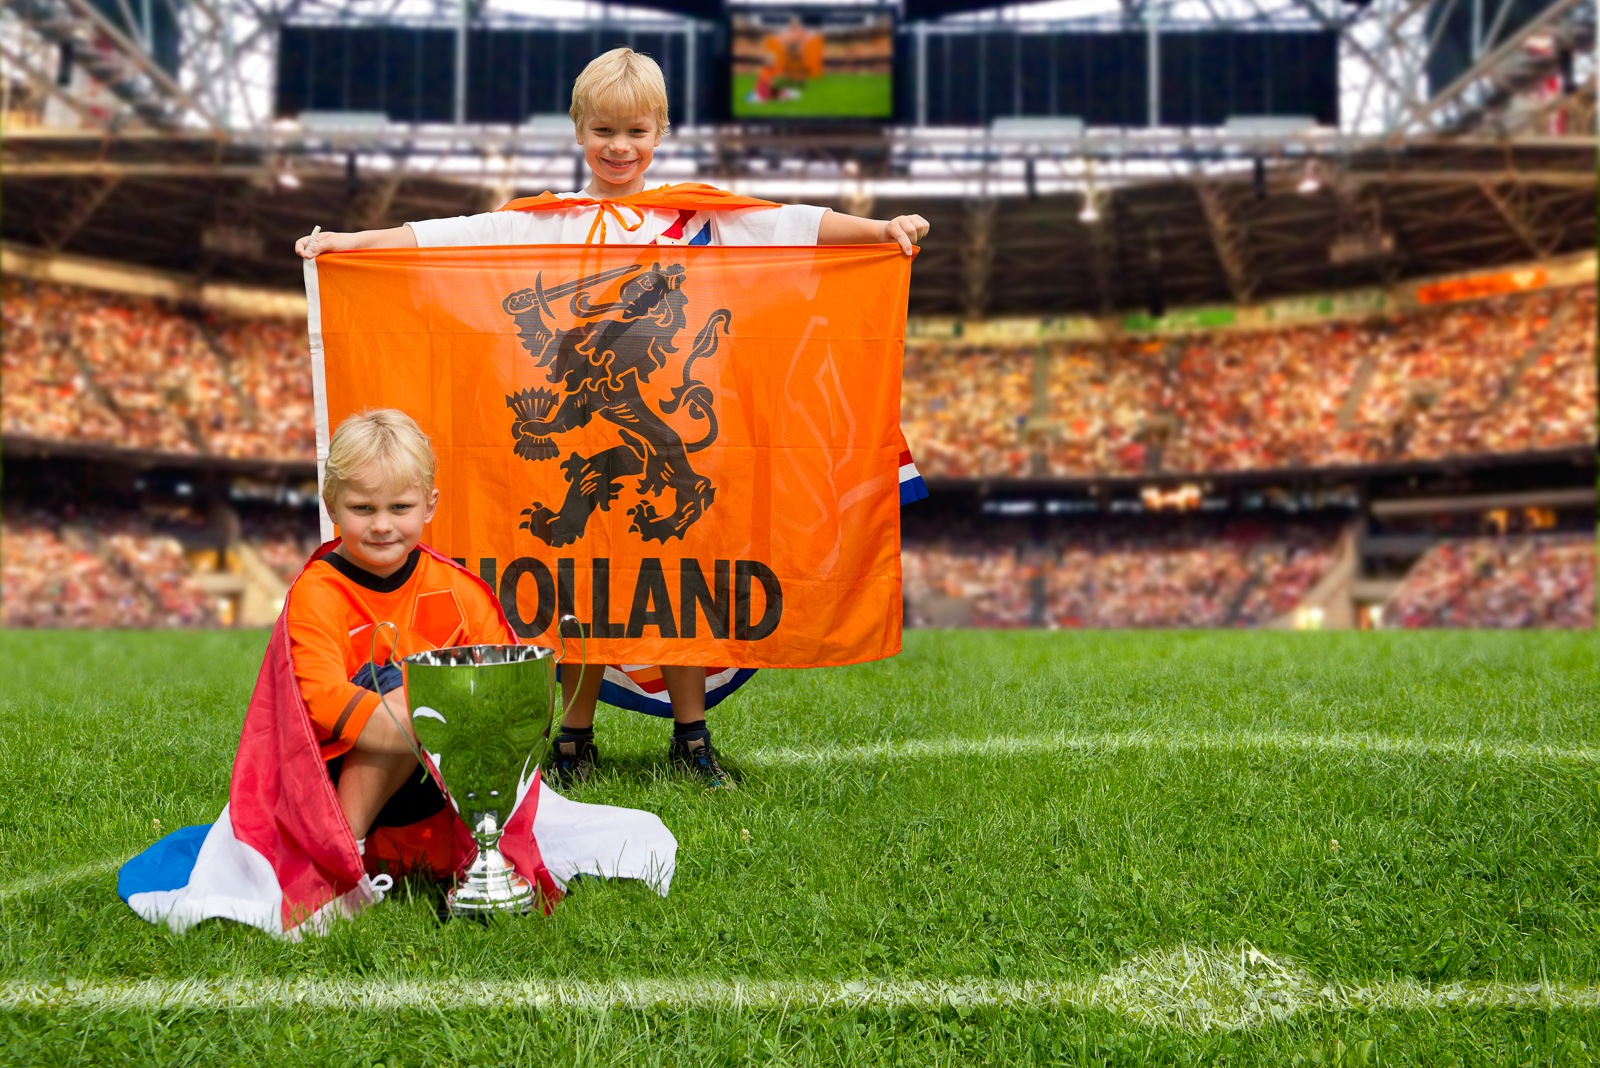 Two young boys in the middle of a huge stadium with Dutch flags and a big trophy,